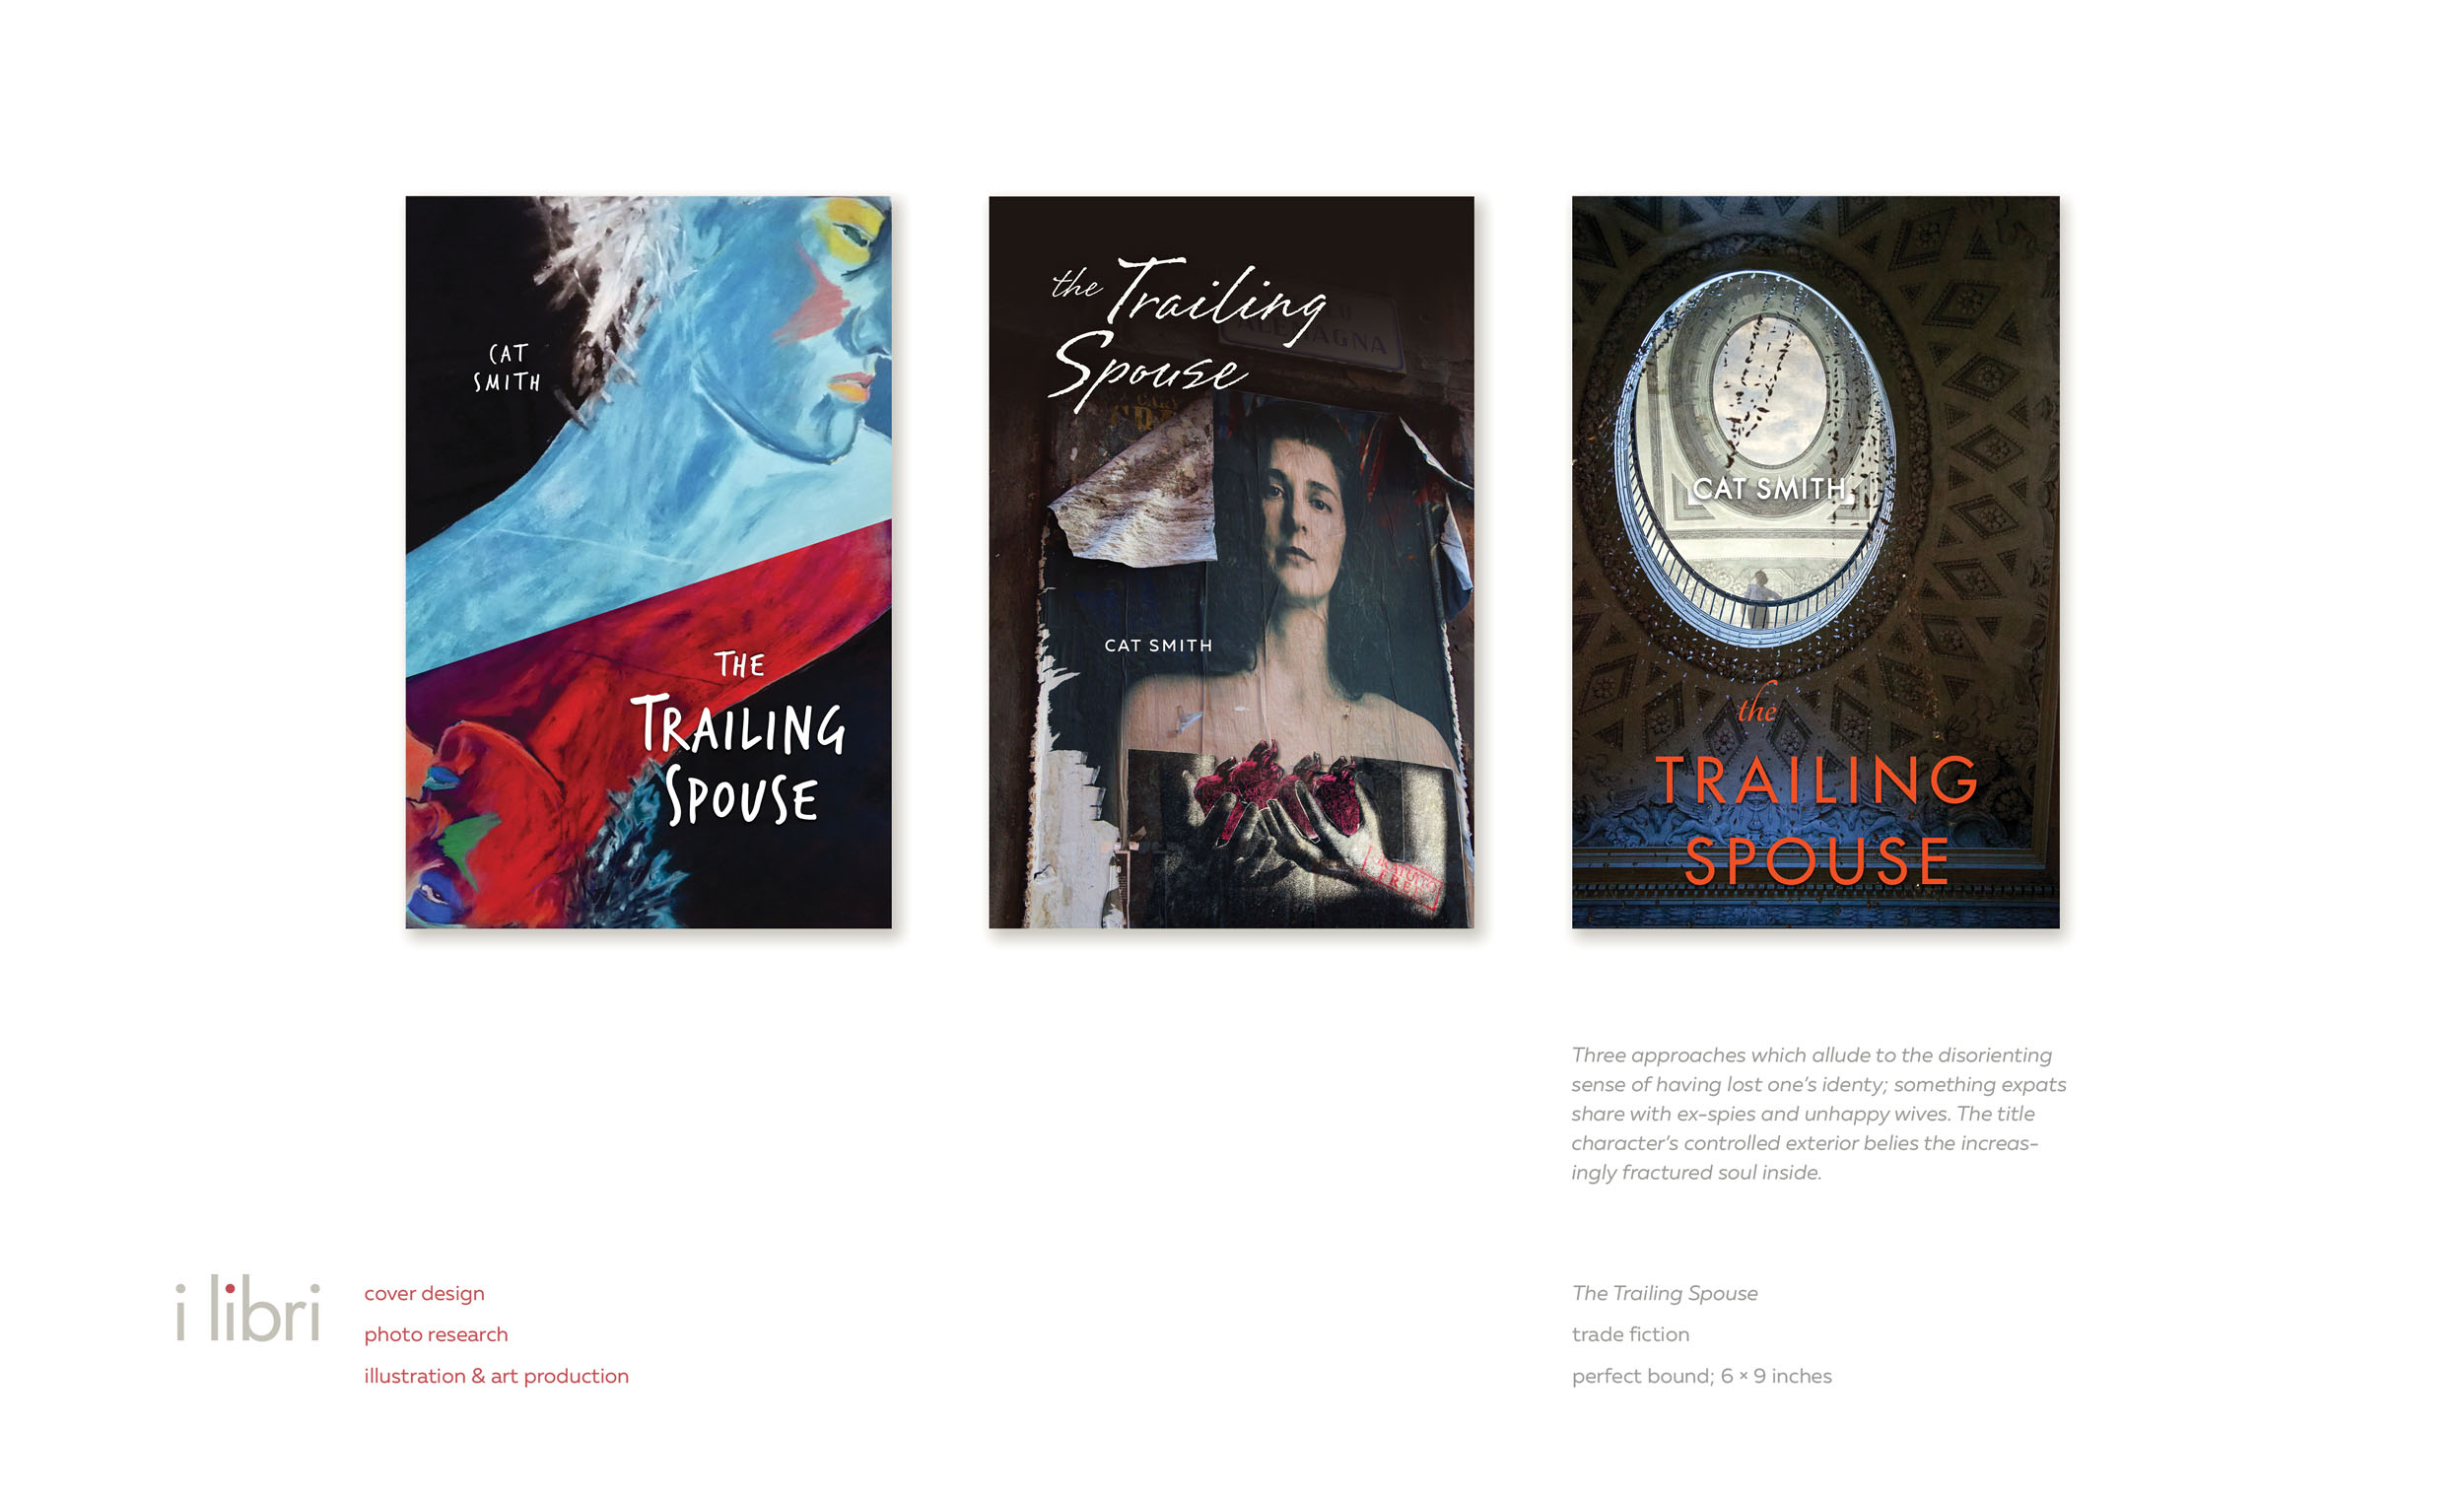 The Trailing Spouse  | cover design, photo research, illustration & art production